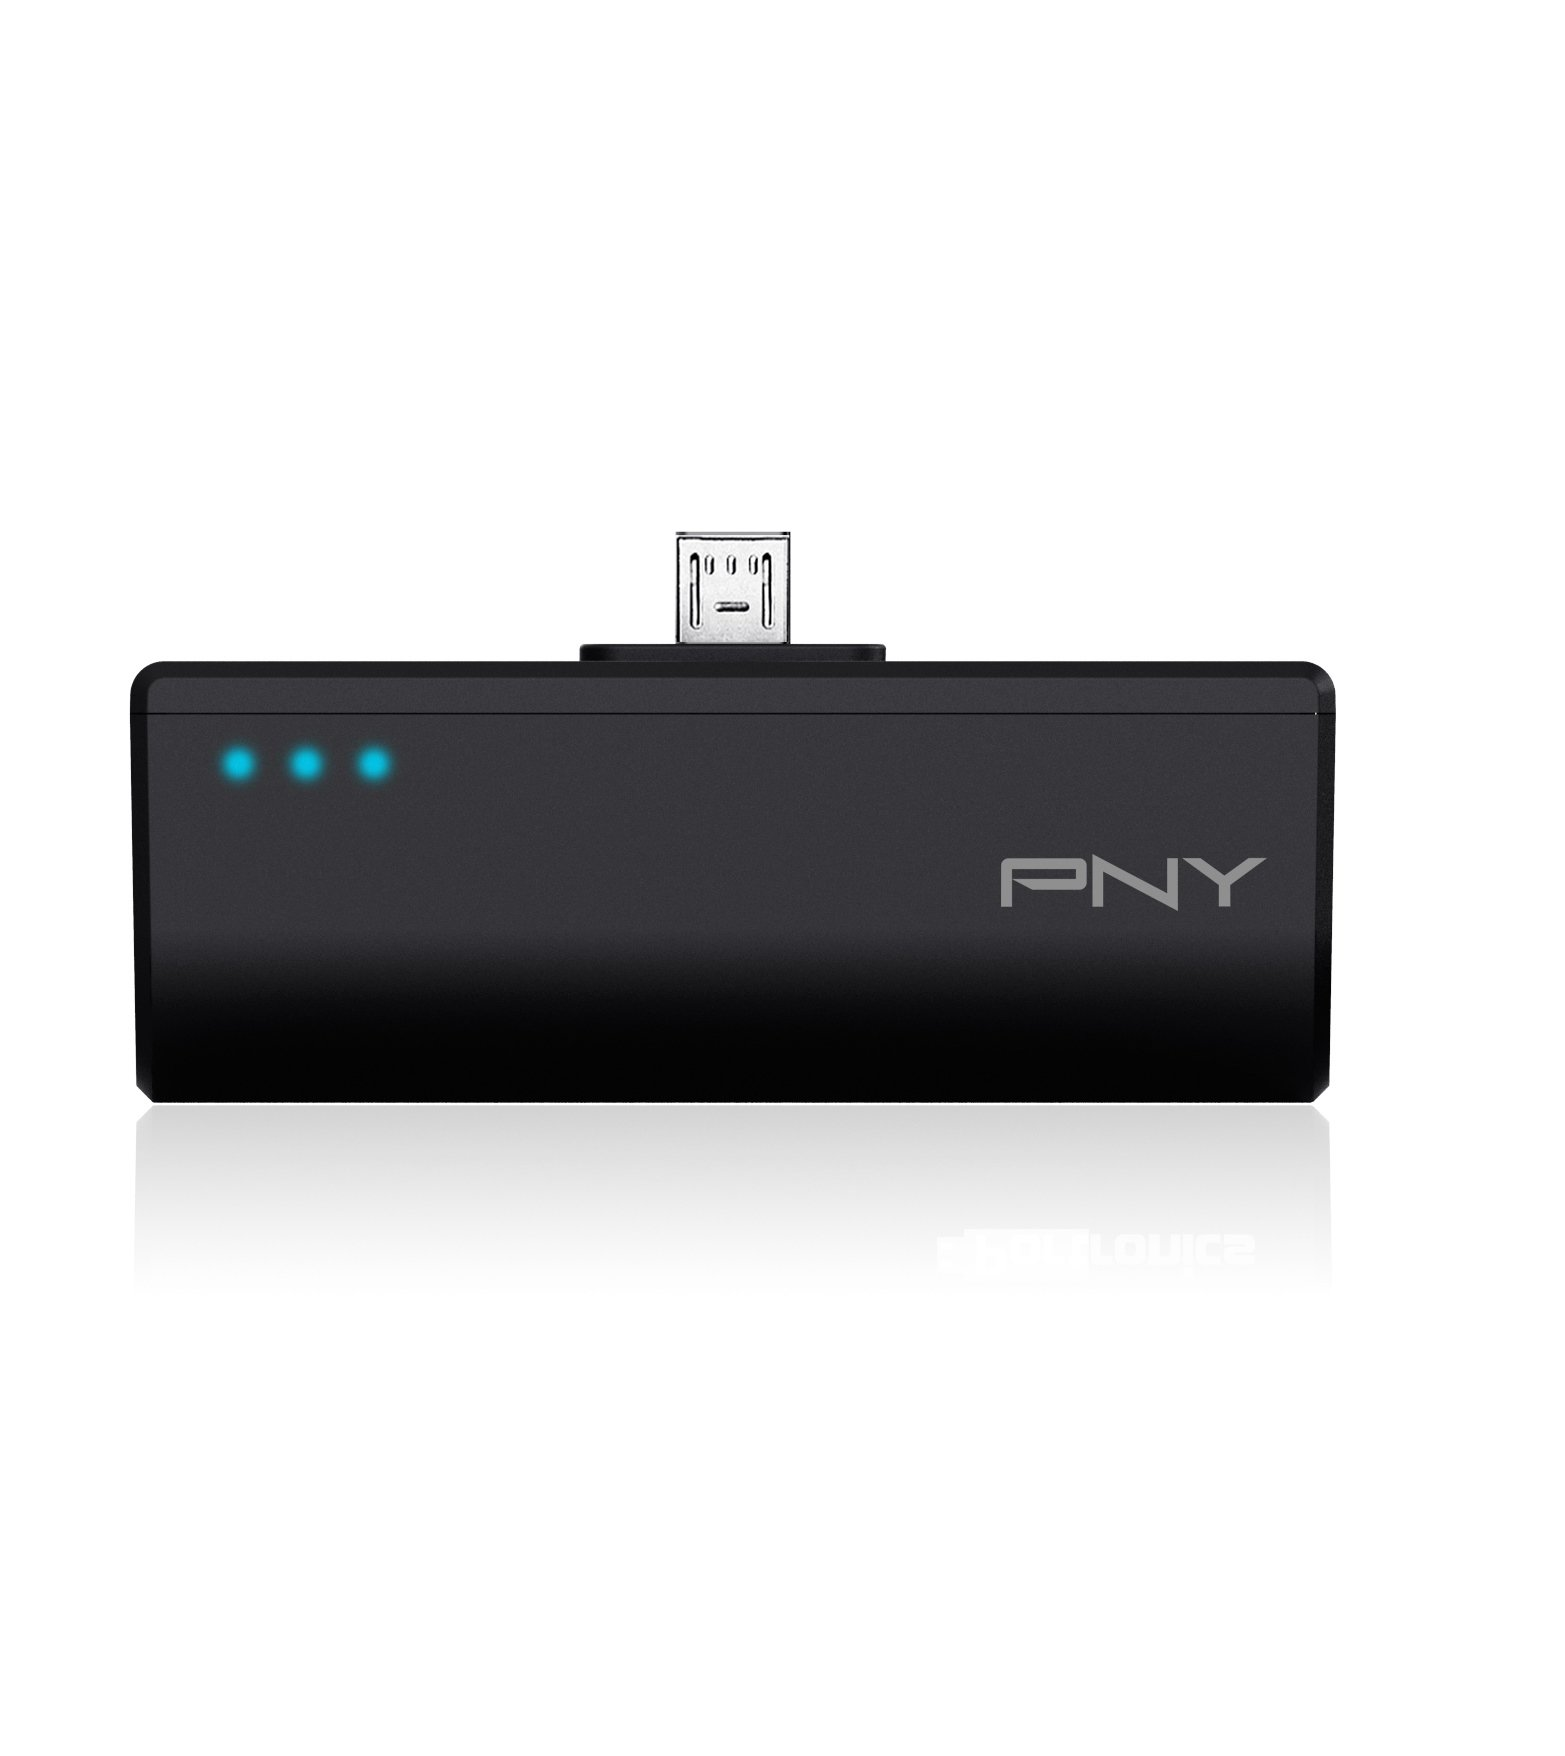 PNY DCM2200 2200mAh 1 Amp PowerPack - Portable Rechargeable Battery Charger with built-in Micro-USB connector for Samsung Galaxy, Nexus, HTC, Motorola, LG, BlackBerry, and other Android Smartphones